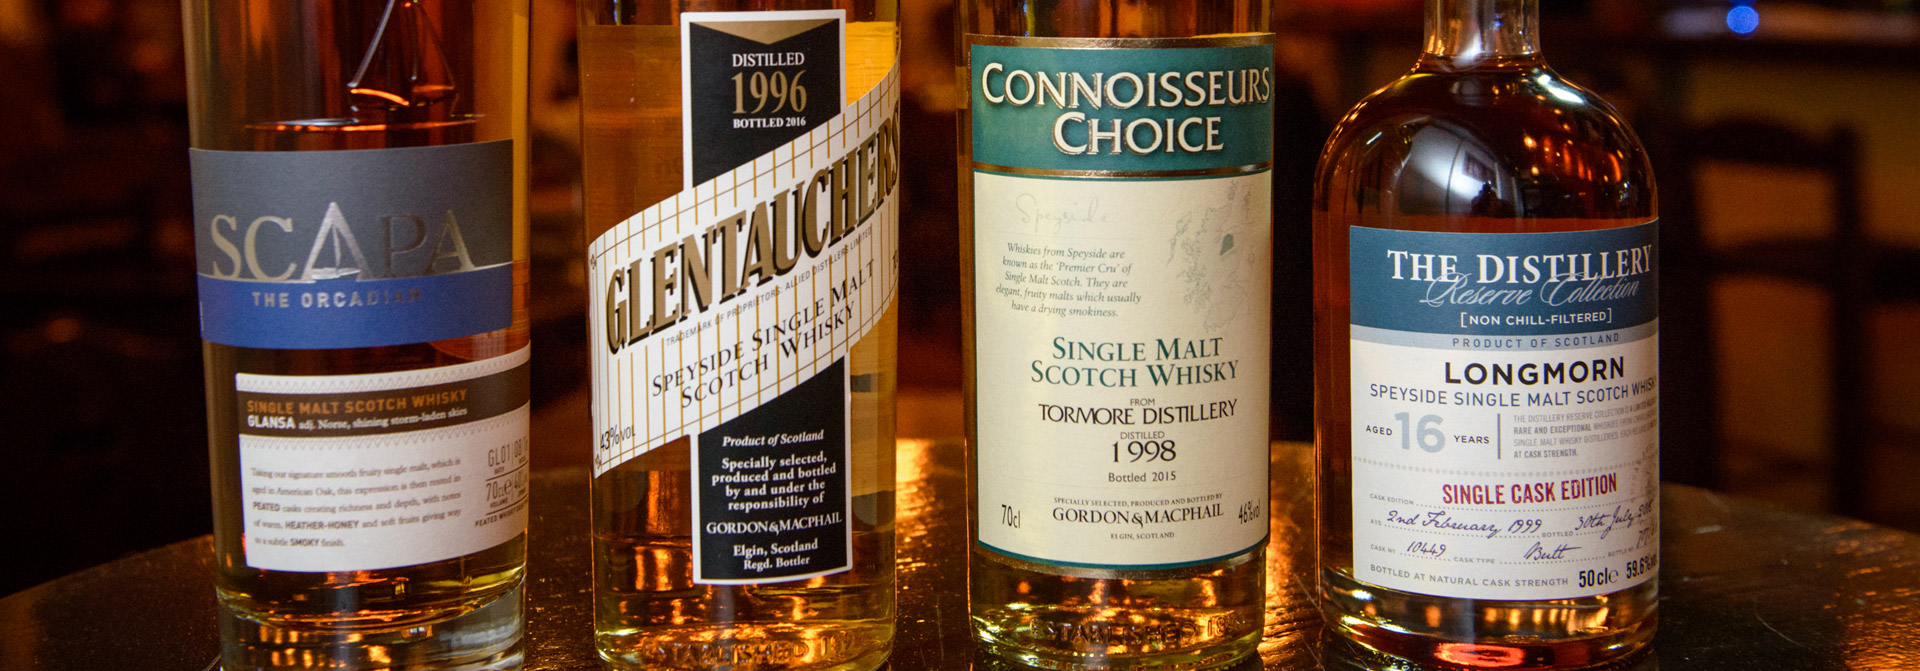 the tasters club whisky tasting Scapa Tormore Glentauchers Gordon & MacPhail Longmorn Avalon